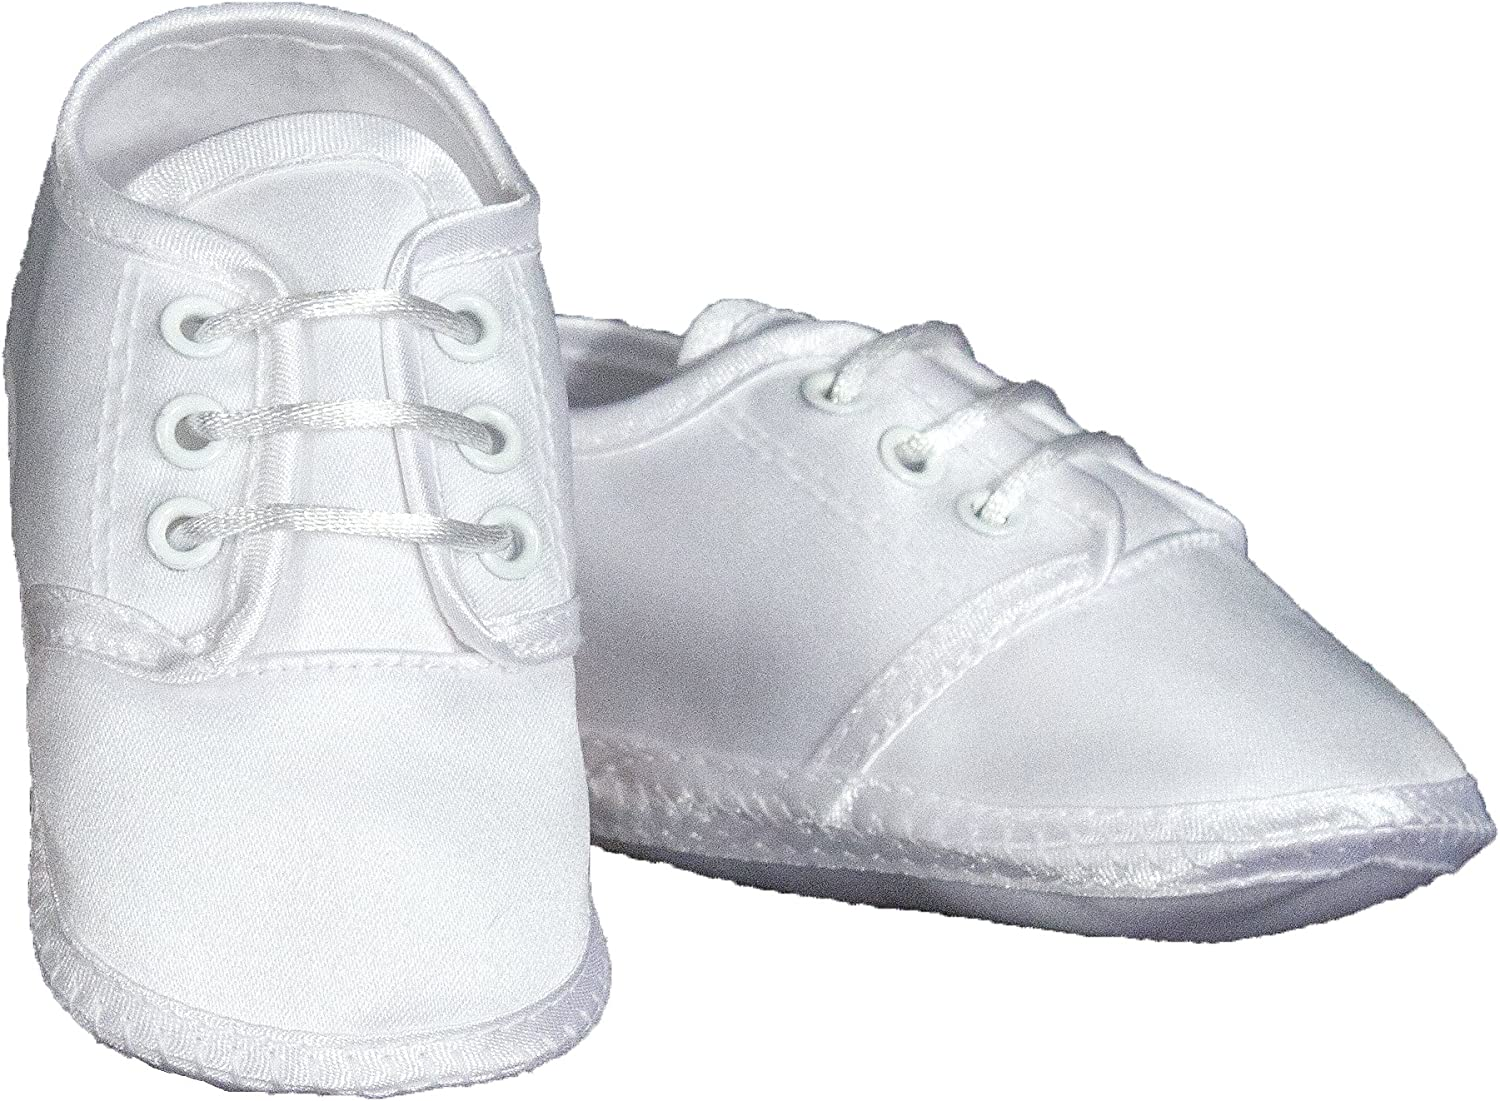 Baby Christening Wedding Crib Shoes Booties WHITE Satin Embroidered Cross 0-4 Mo